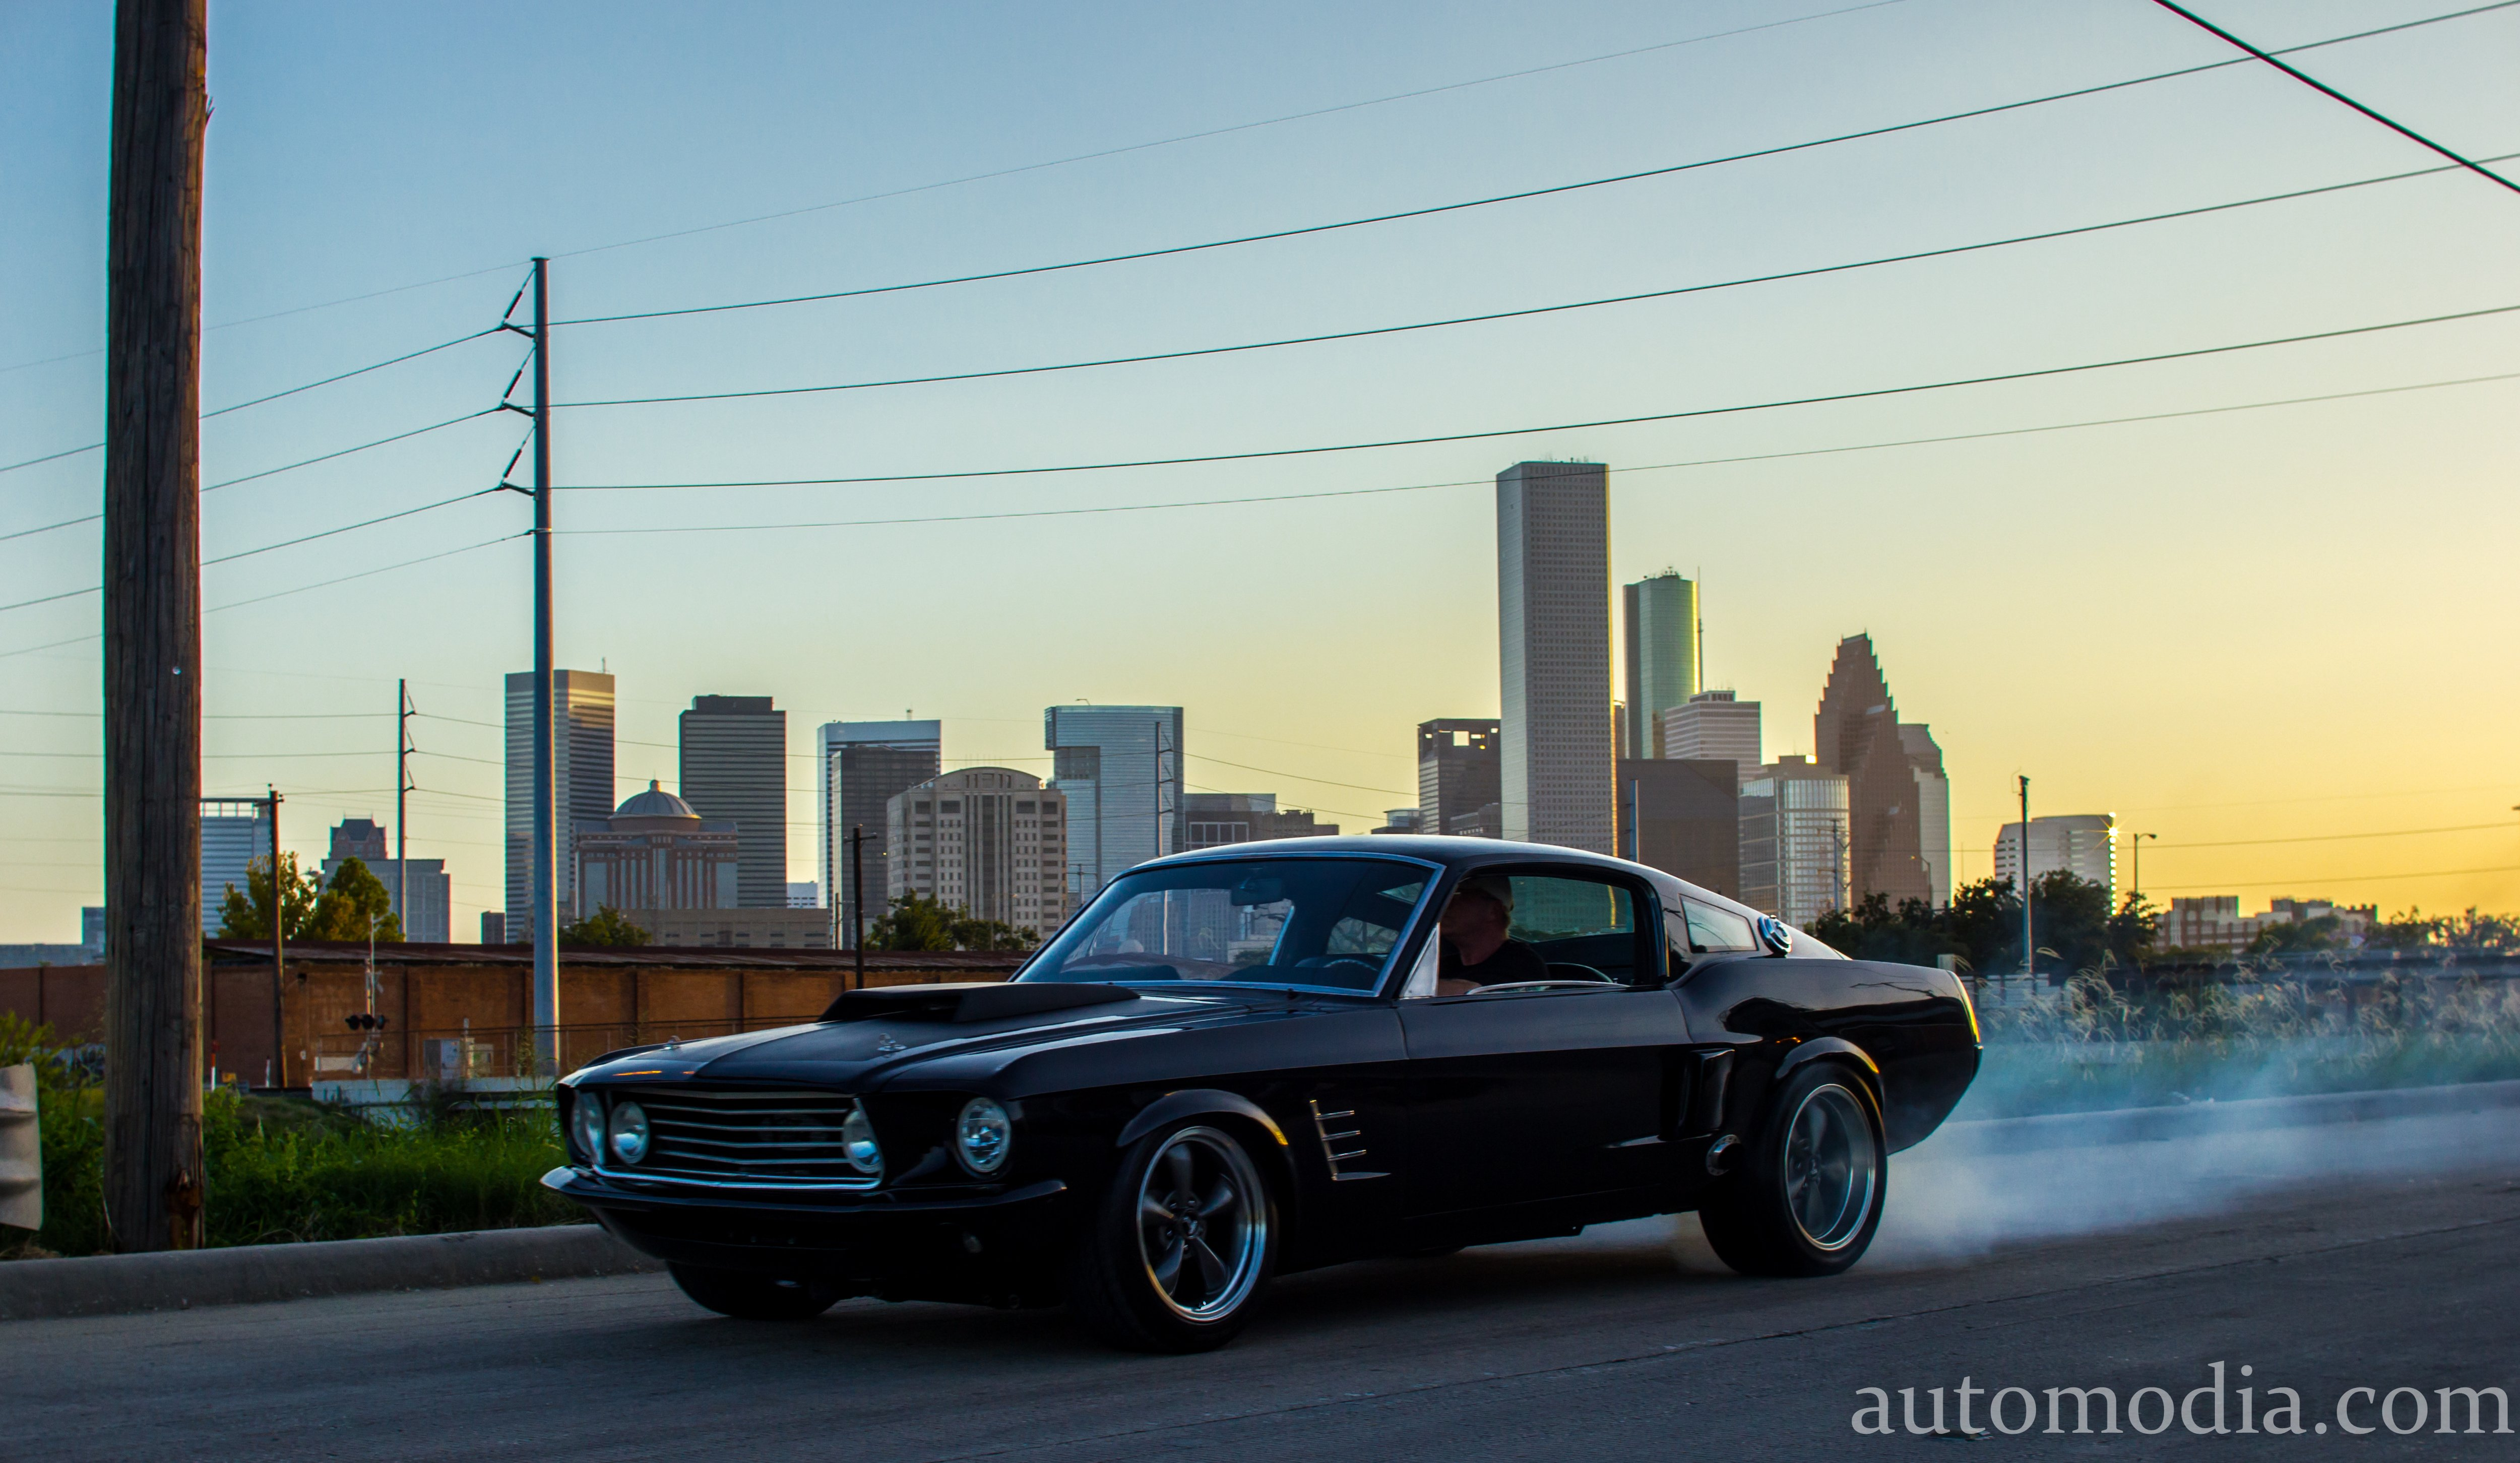 1967 ford mustang fastback street rod rodder hot muscle usa 5000x2903 02 wallpaper 5000x2903 675360 wallpaperup